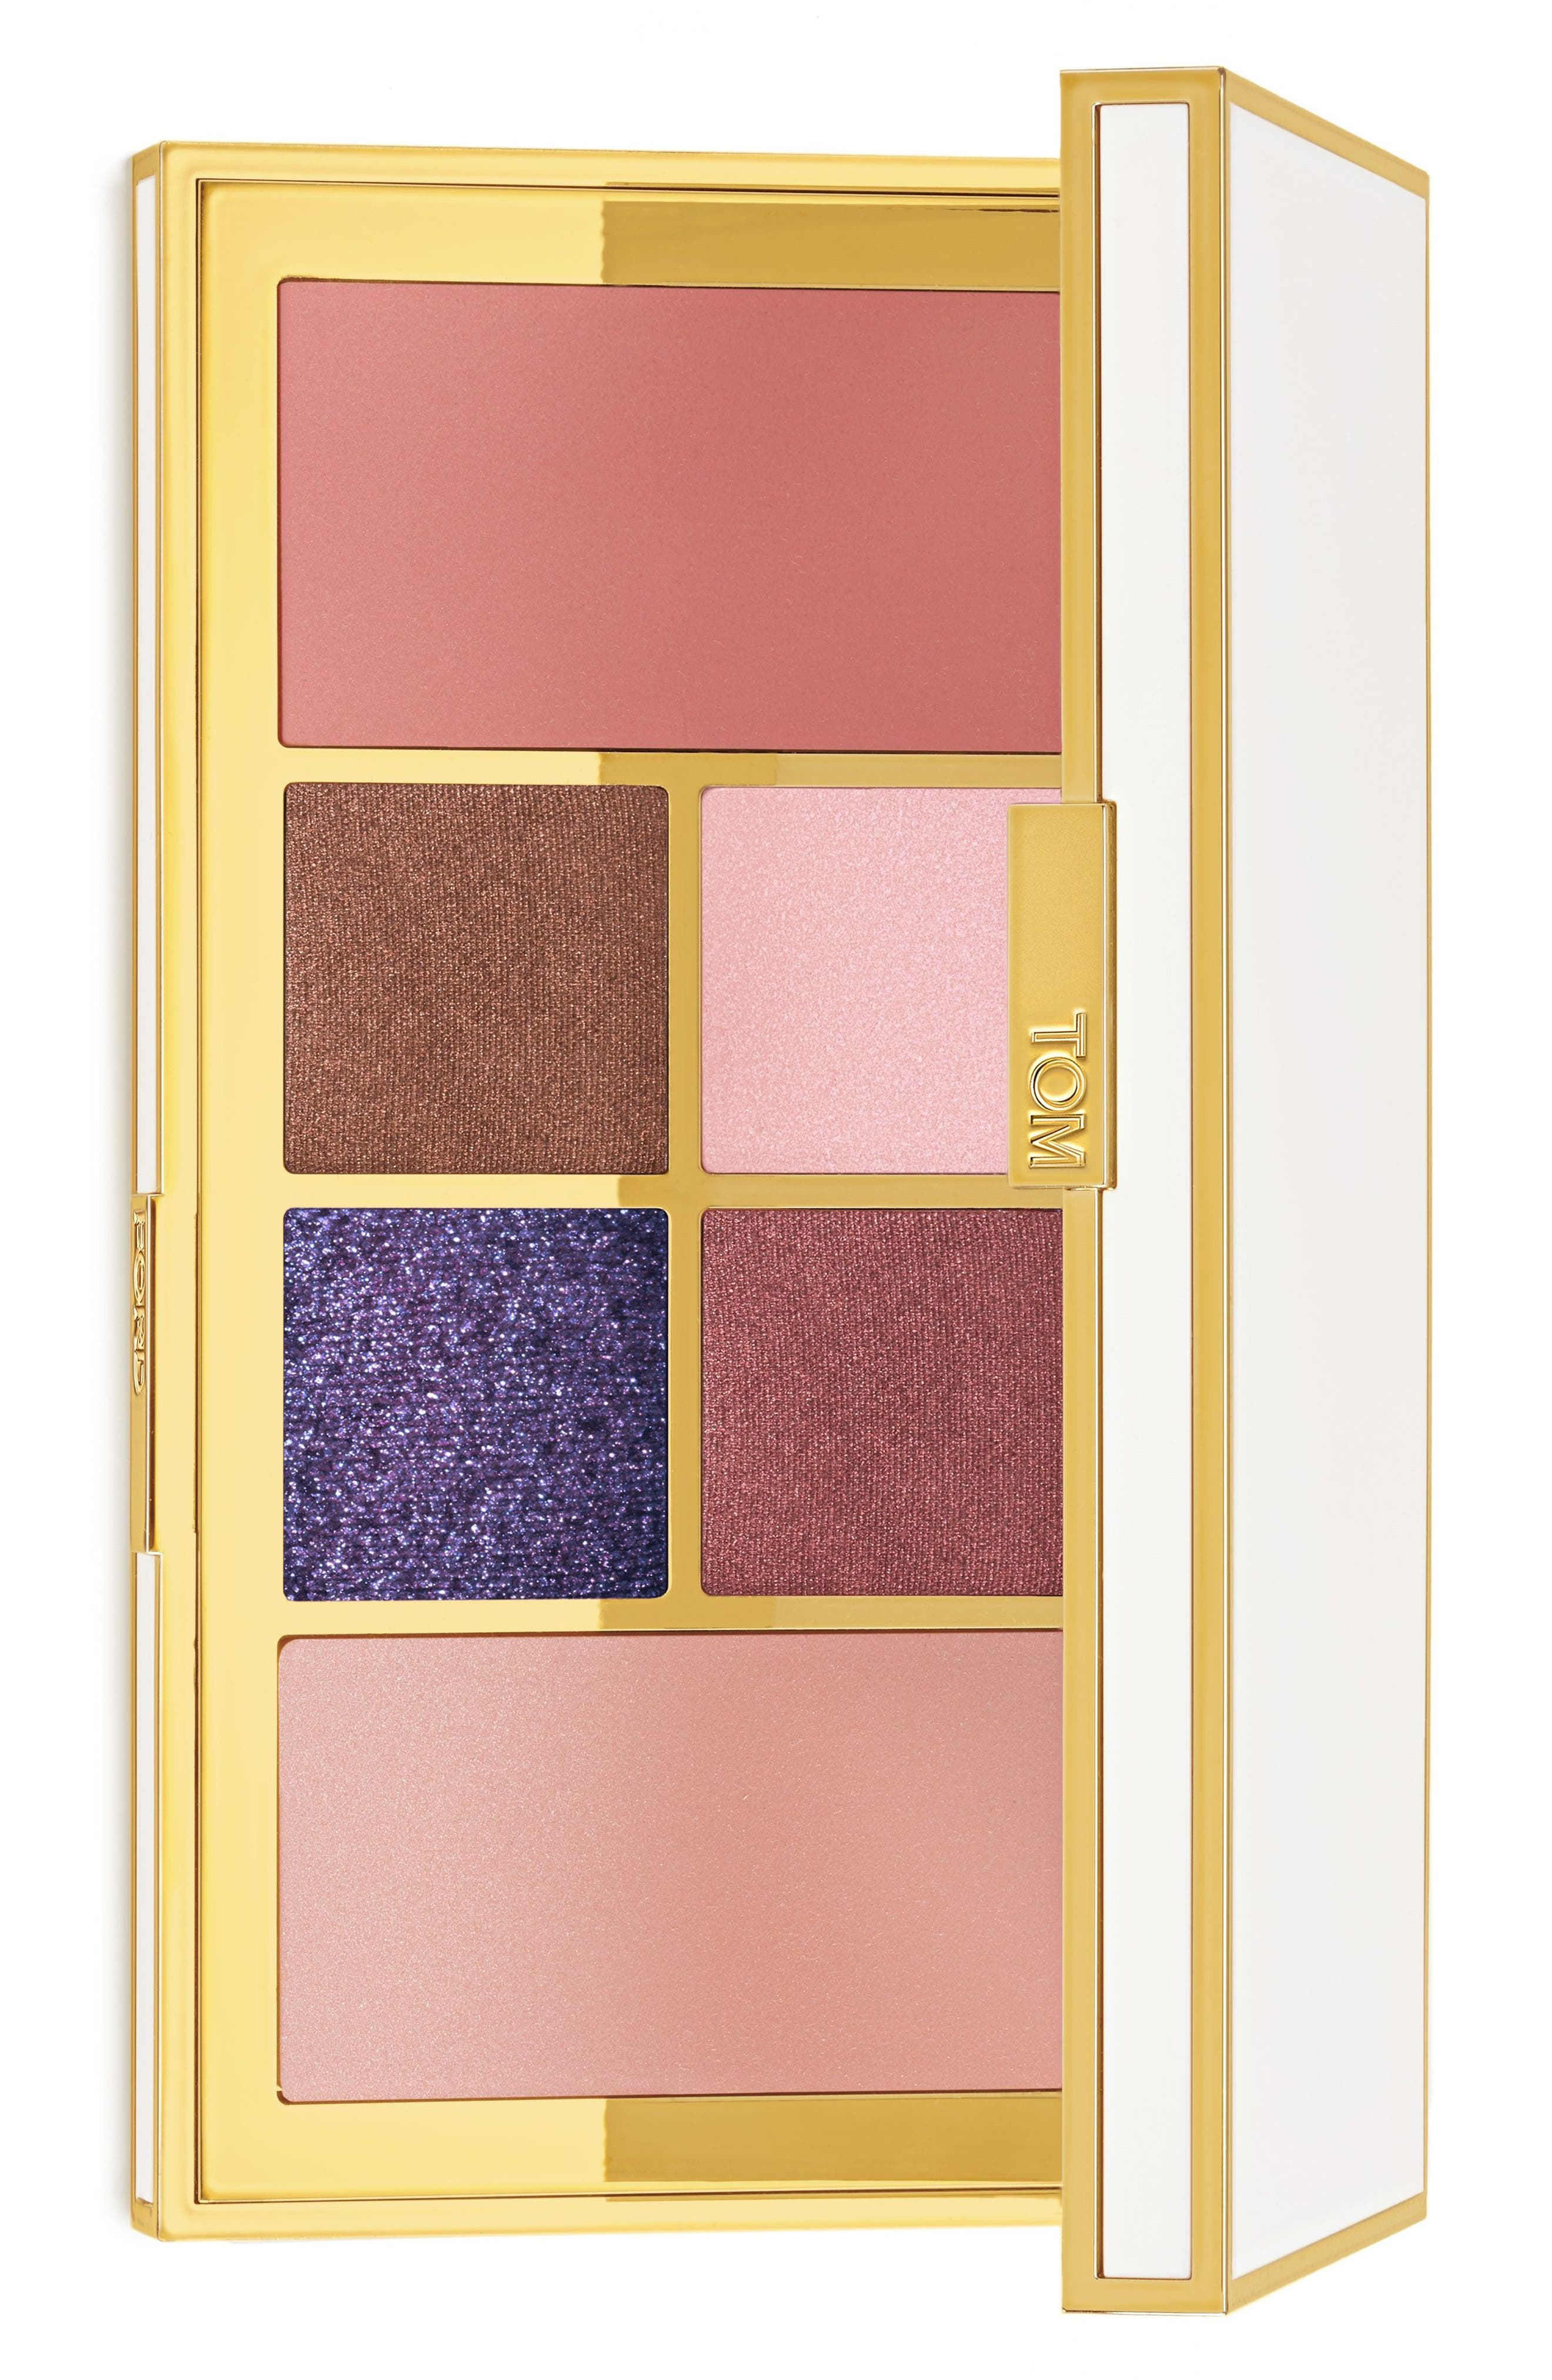 Main Image - Tom Ford Soleil Eye and Cheek Palette